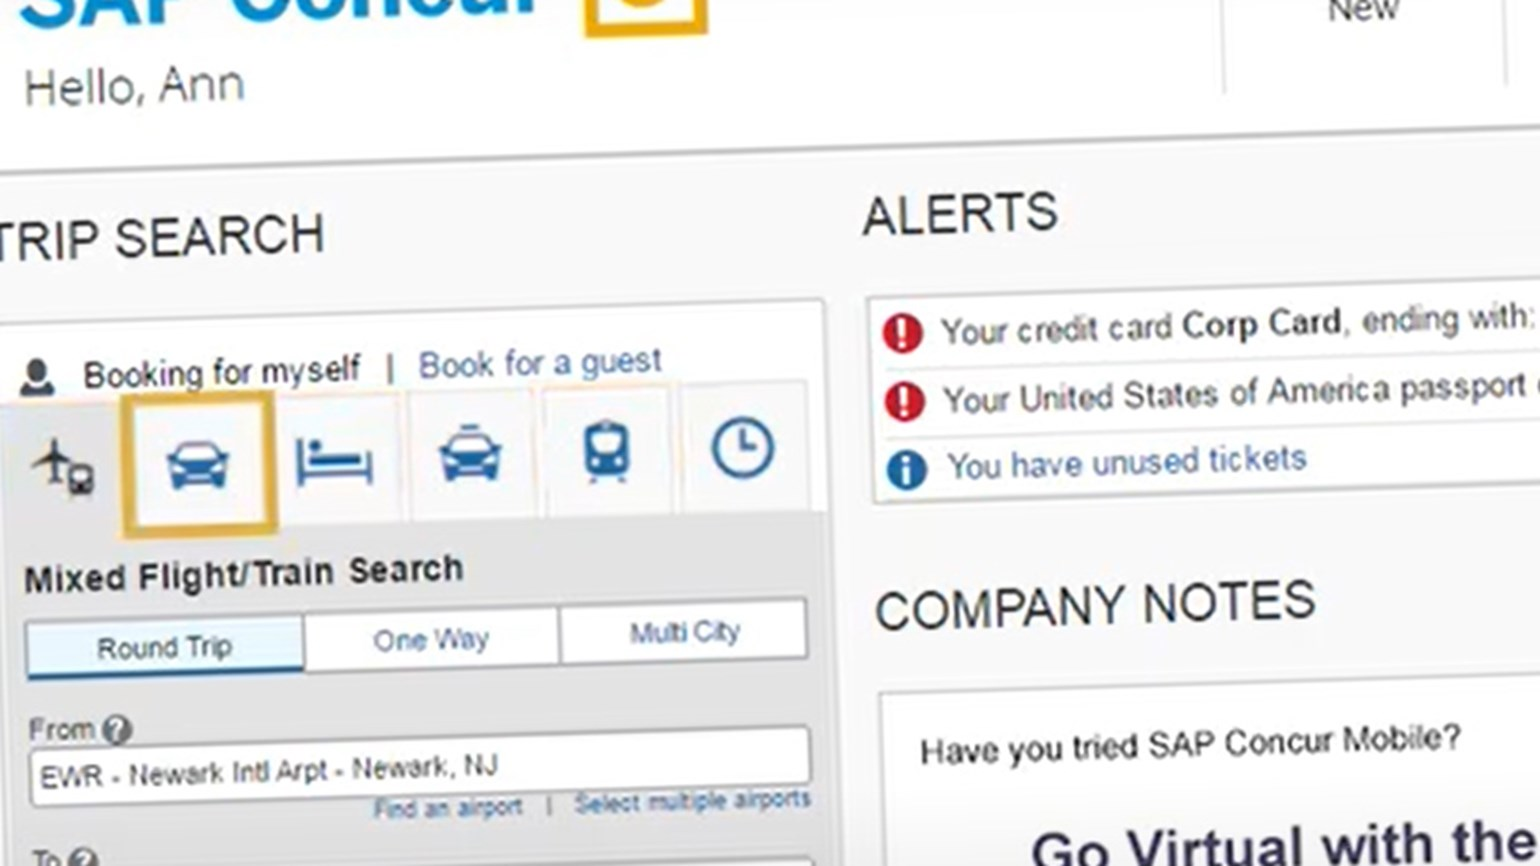 Amex GBT Supply MarketPlace now connected to Concur Travel